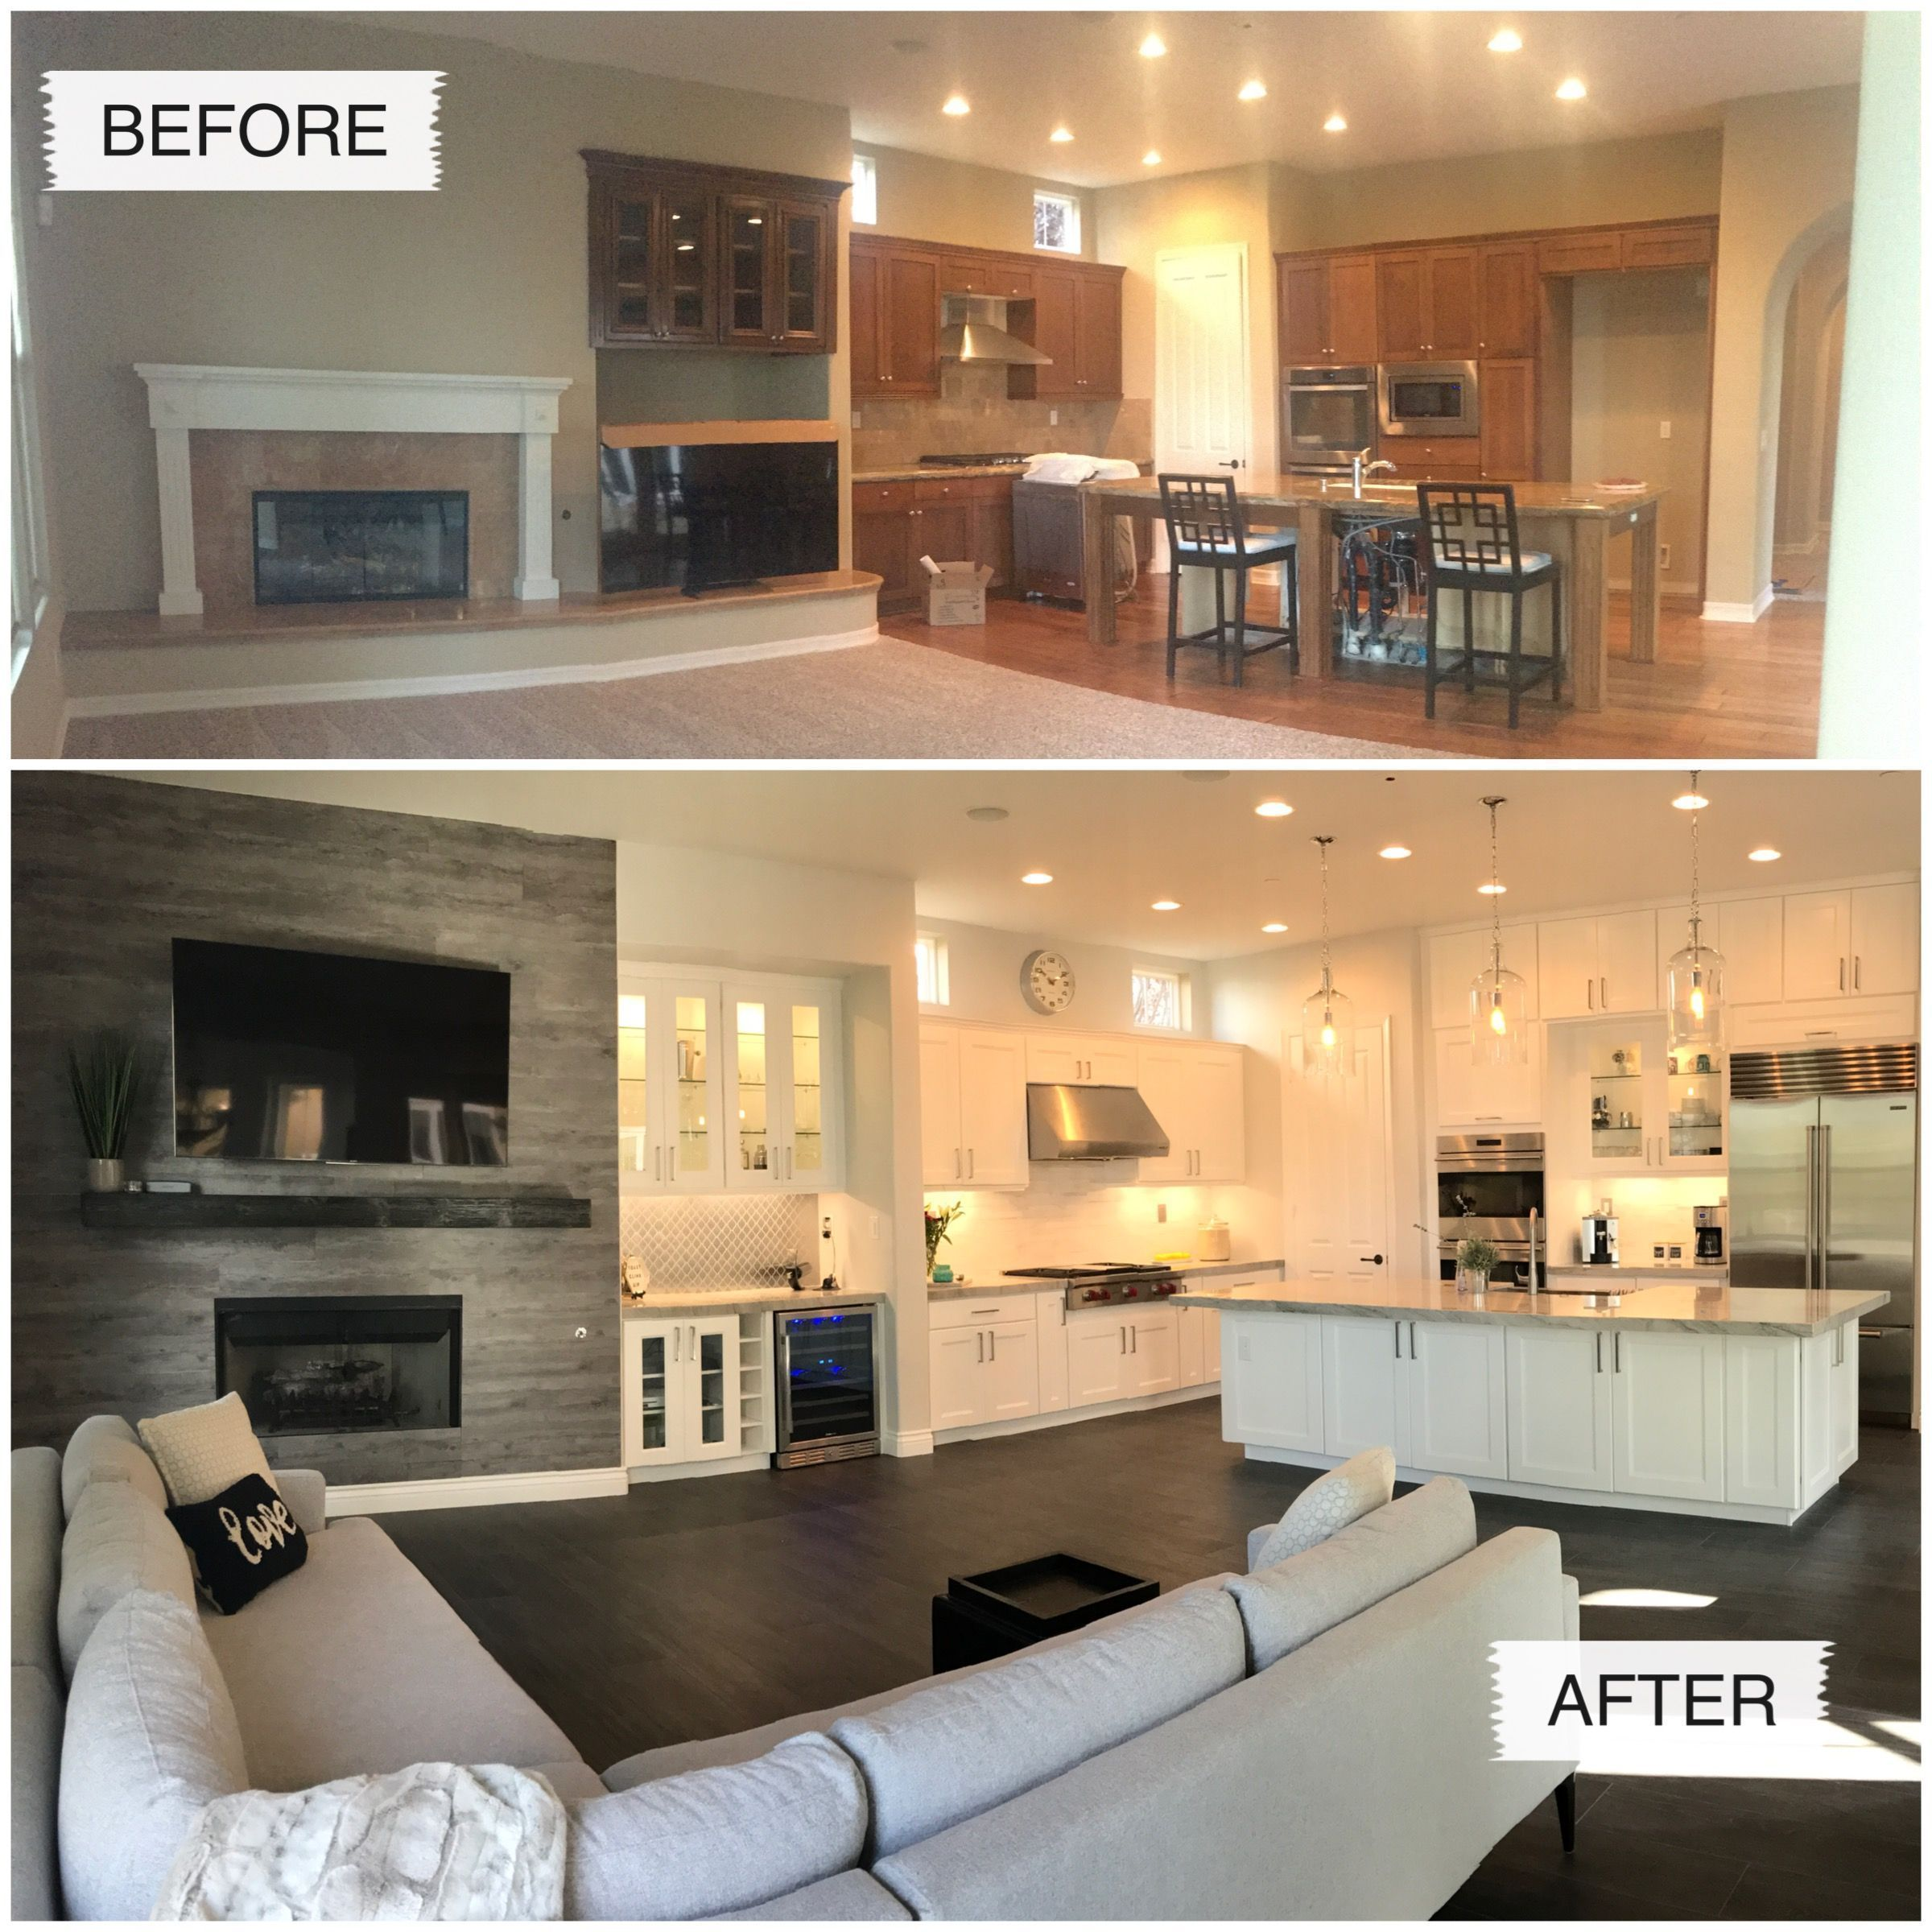 Before And After Pictures Of Our Kitchen Remodel